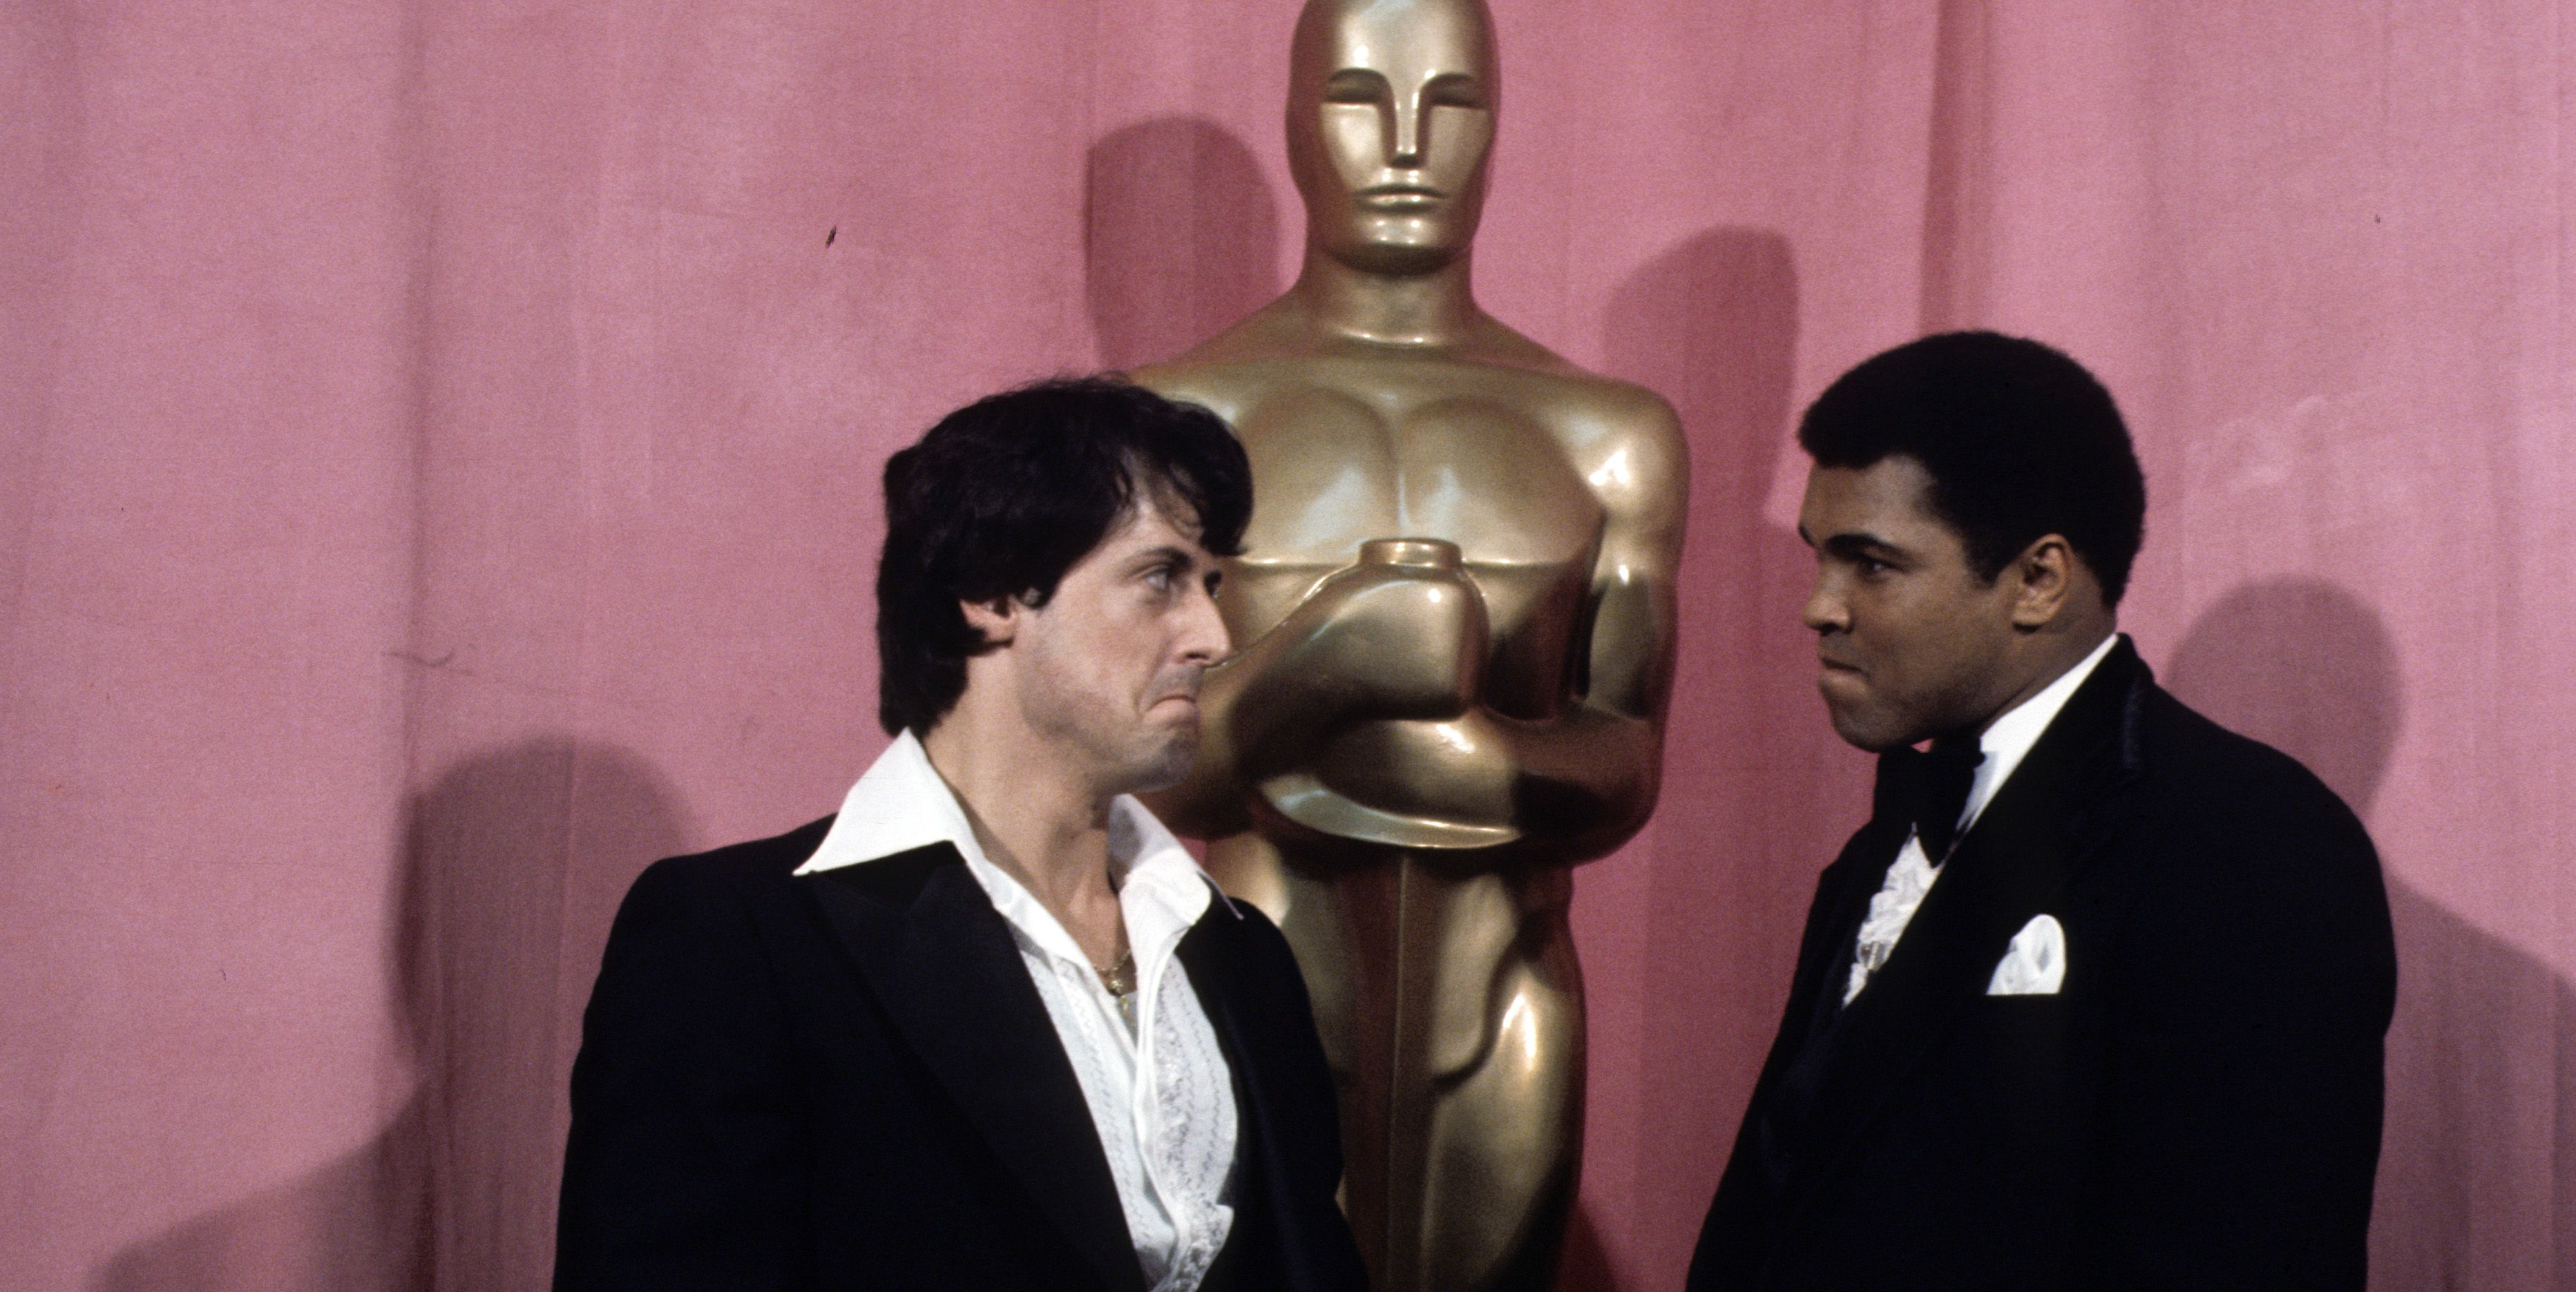 The Academy Awards in the '70s: The Photos